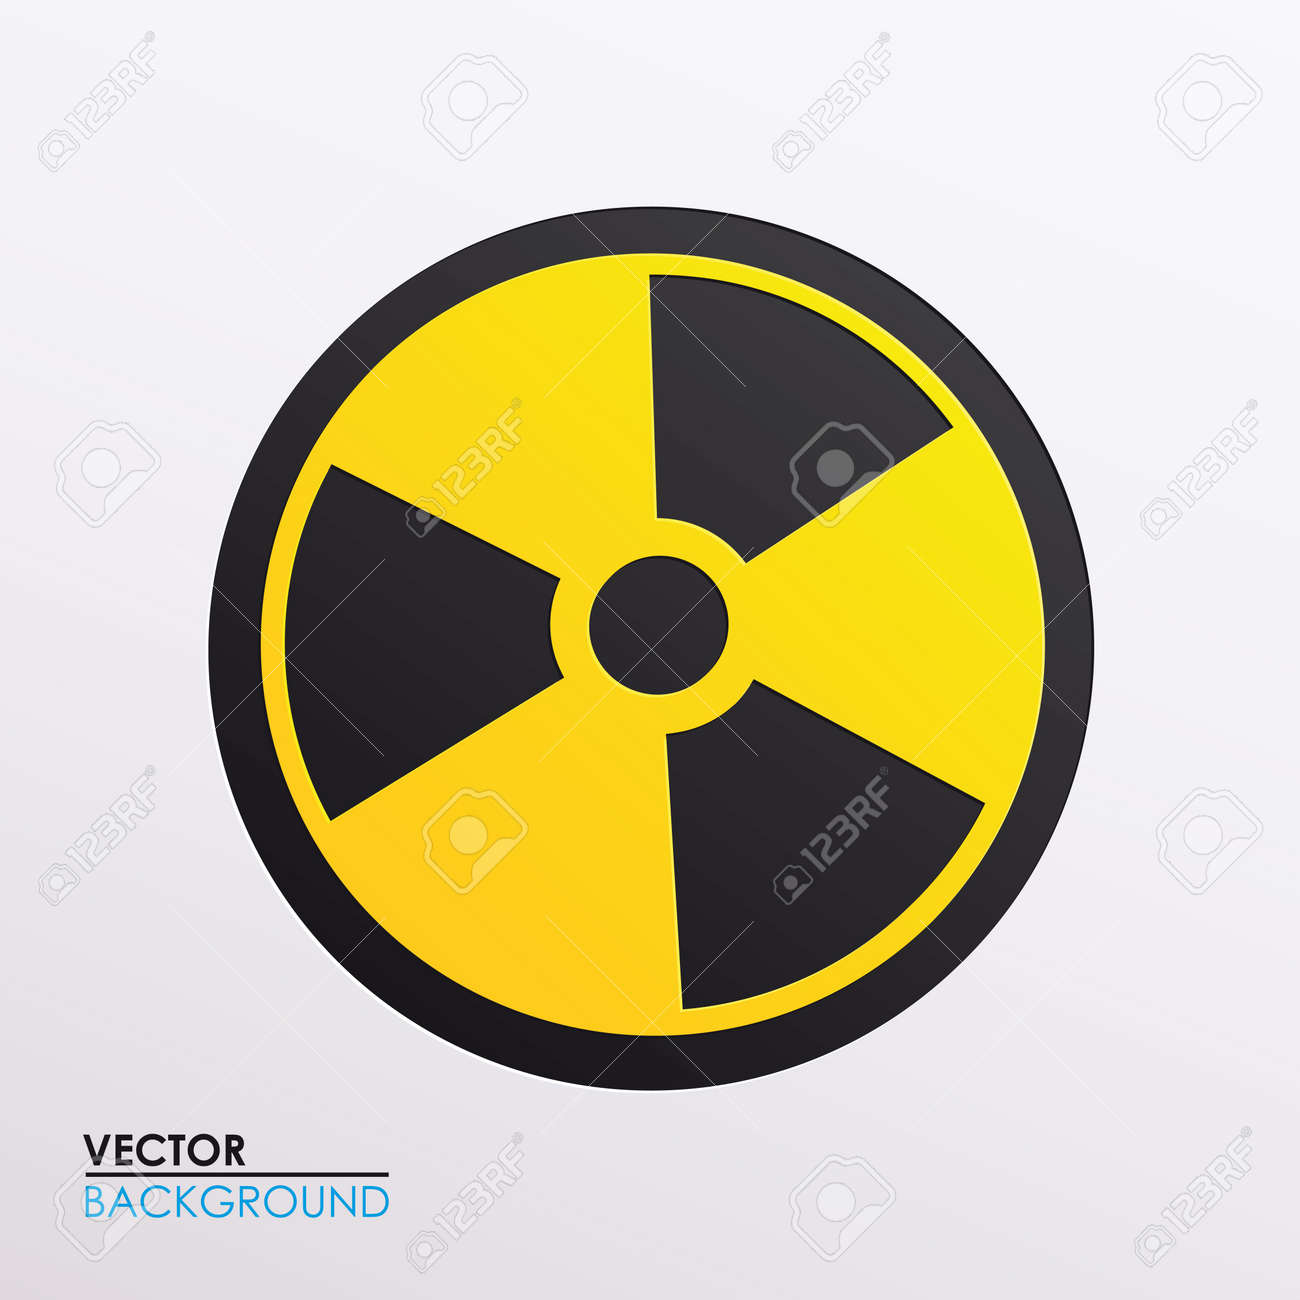 Vector illustration of radiation symbol Stock Vector - 17697274